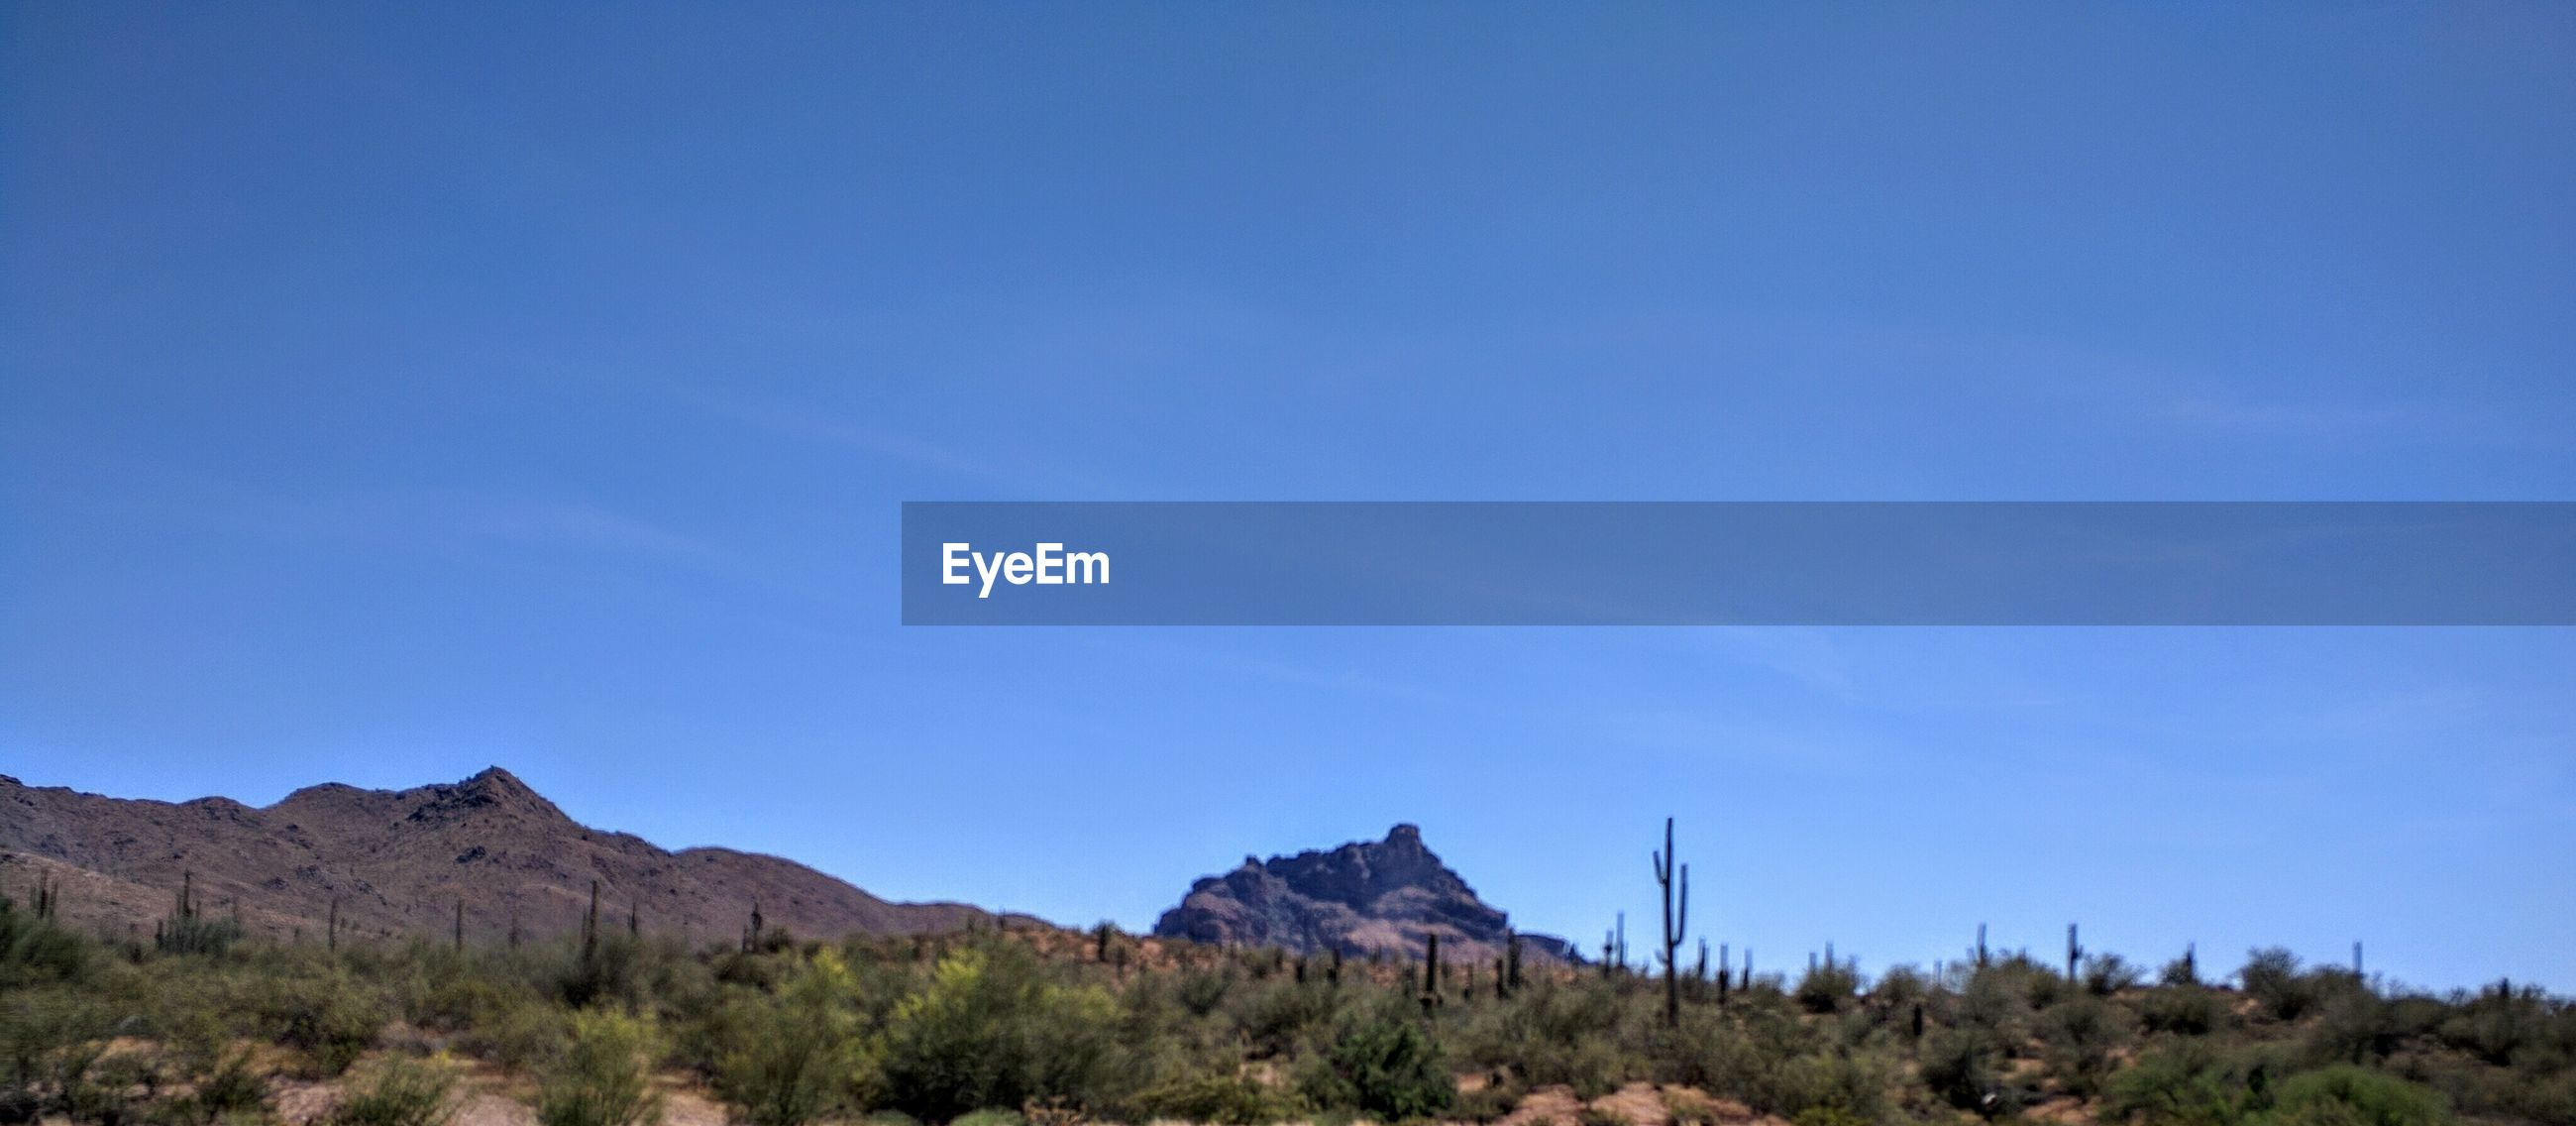 Scenic view of mountains against blue sky on sunny day